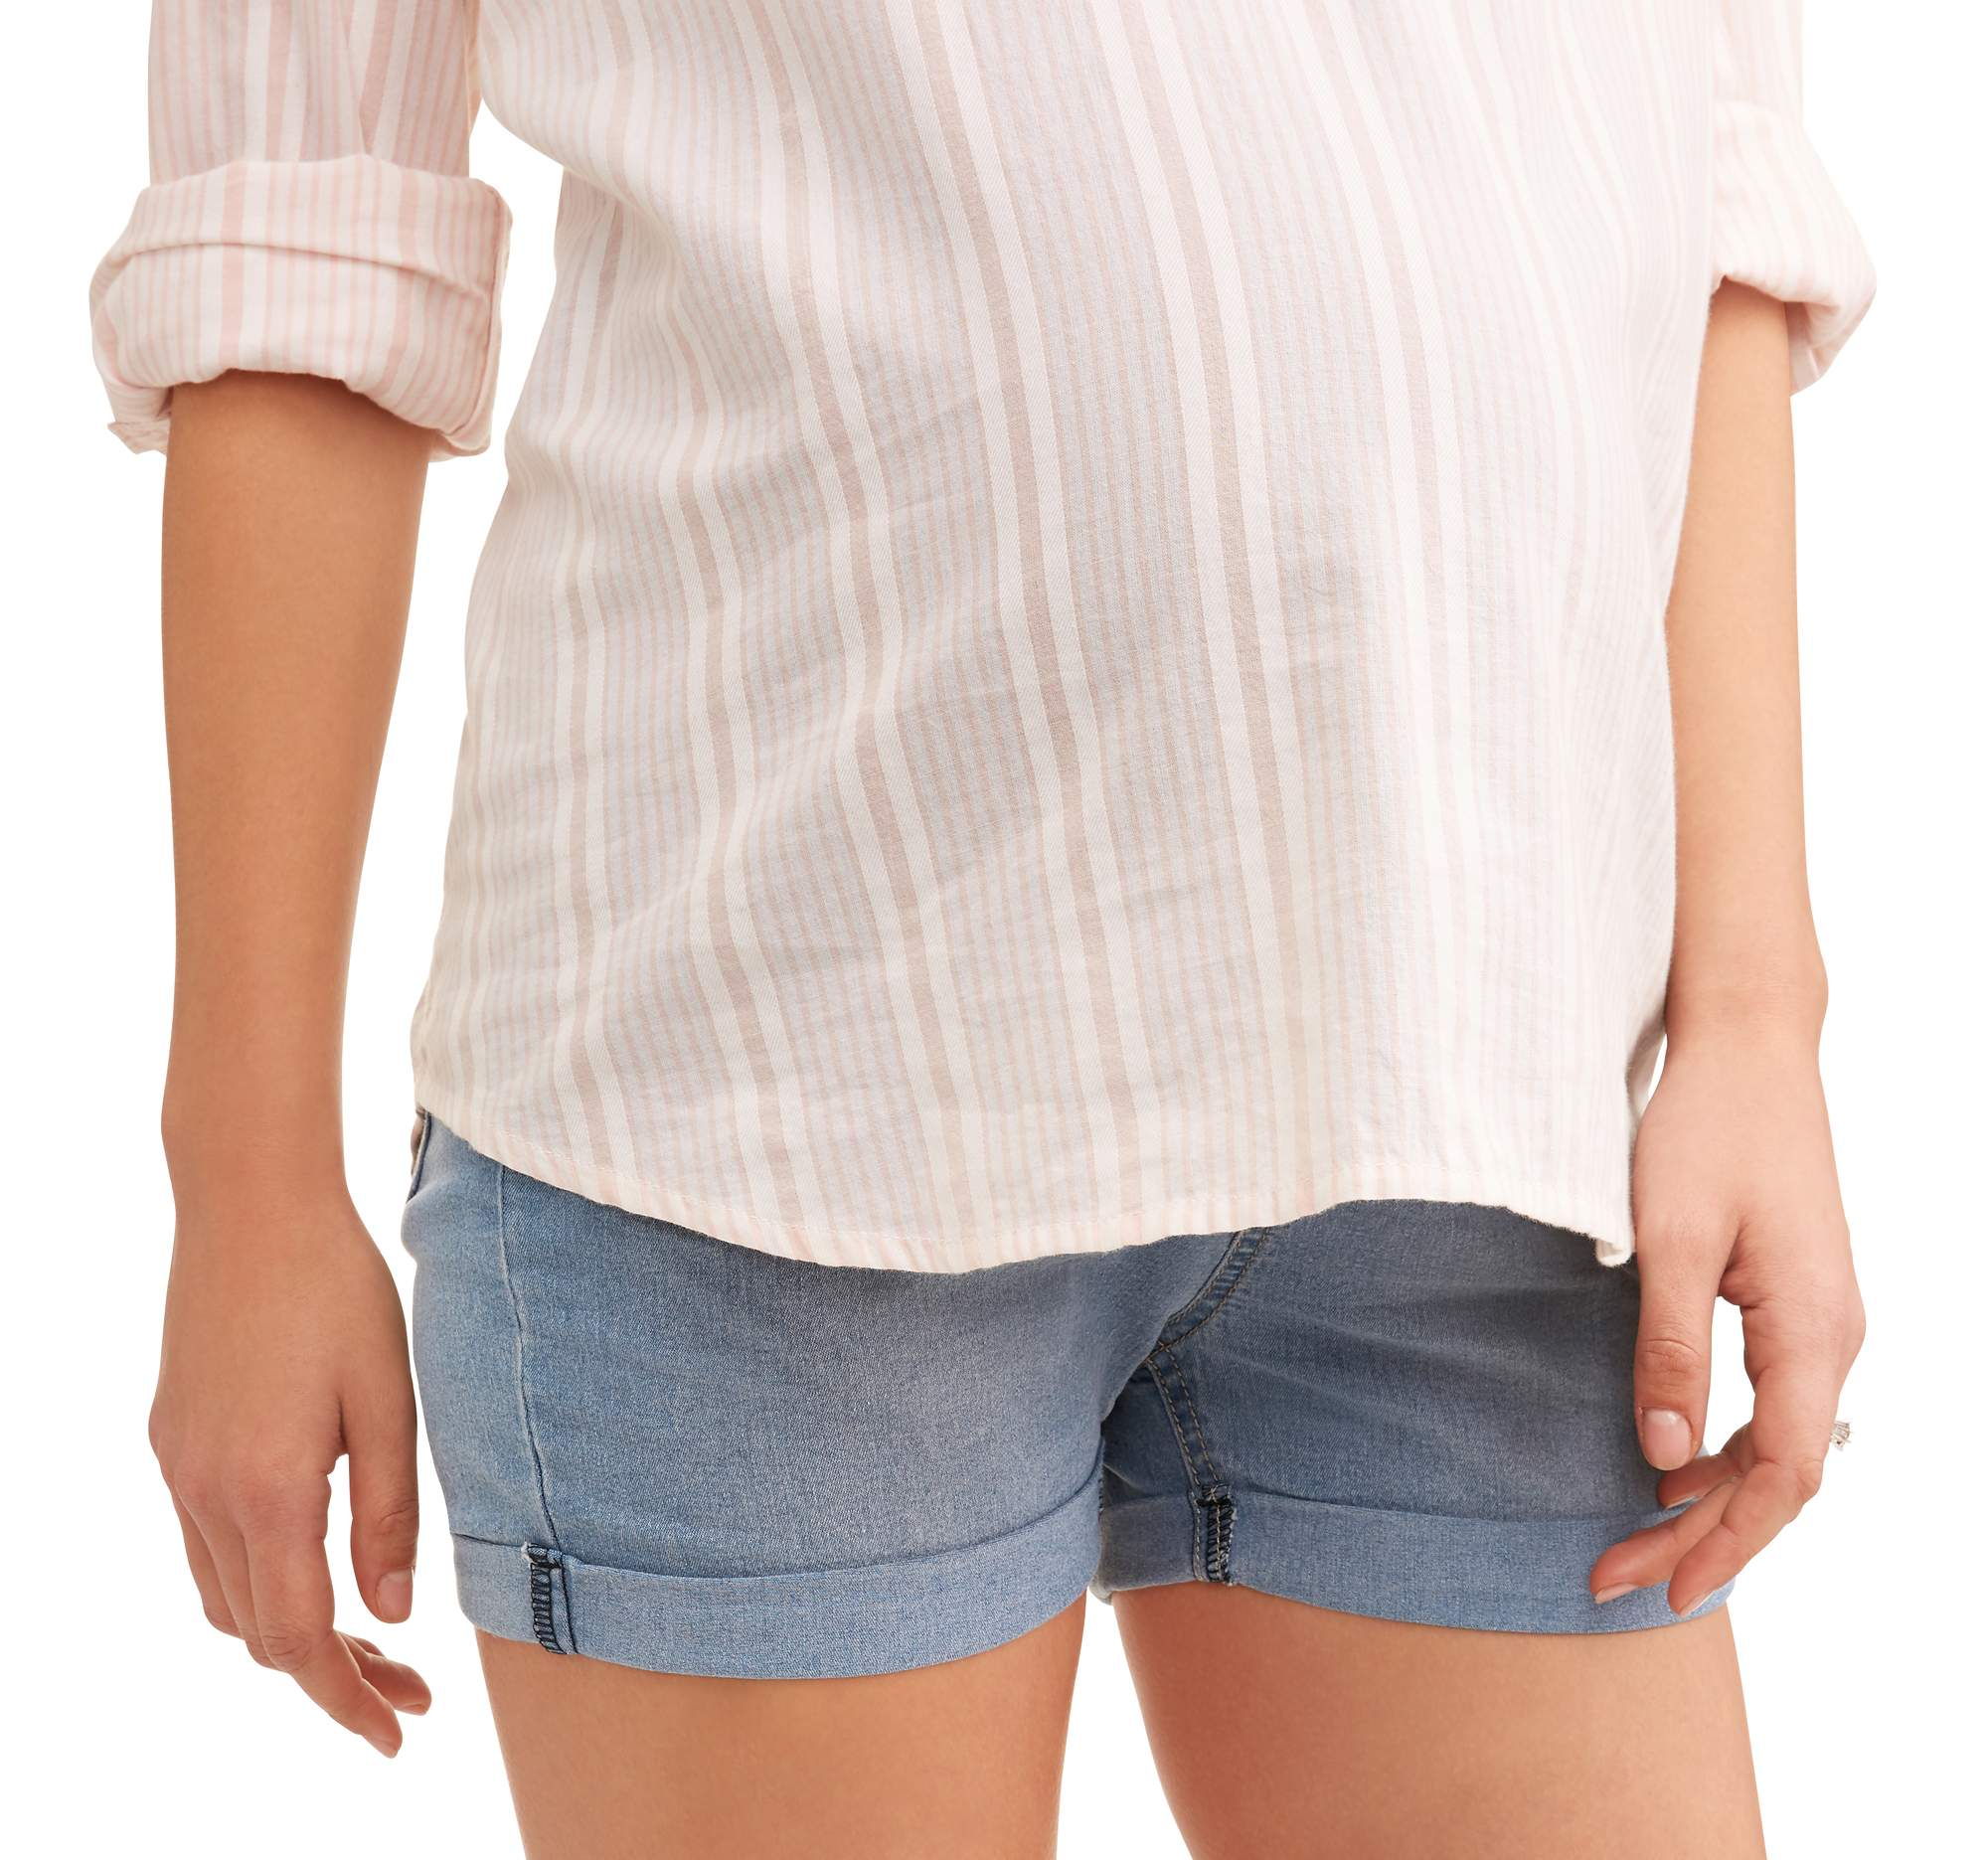 Oh Mamma Maternity Full Panel Super Soft 5 Pocket Shorts -- Available in Plus Sizes by